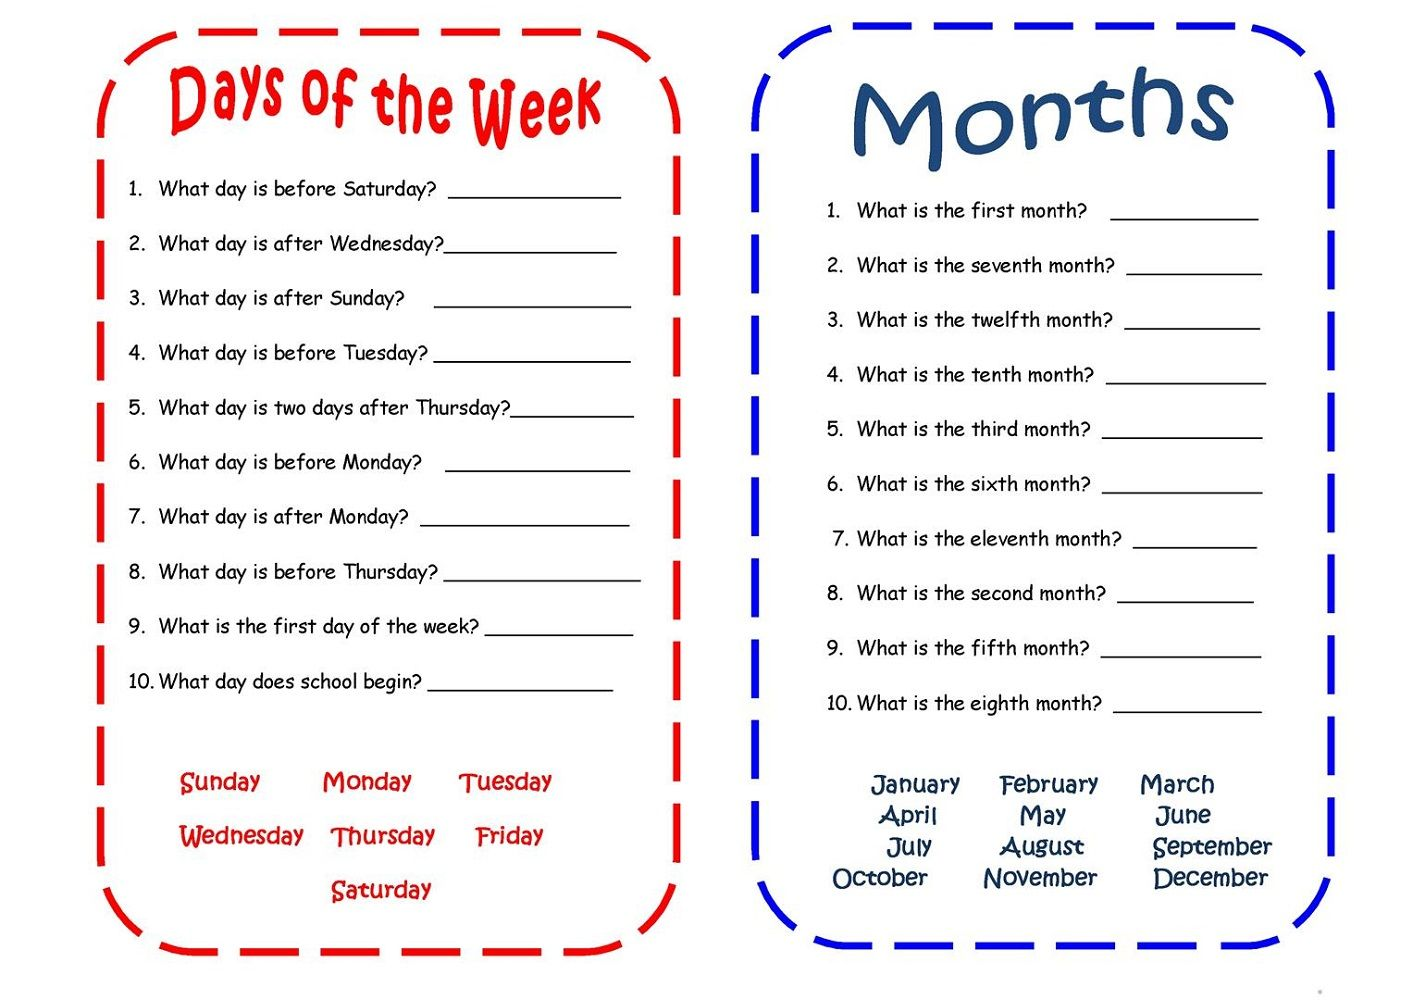 Days Of The Week Worksheets For Kids With Images